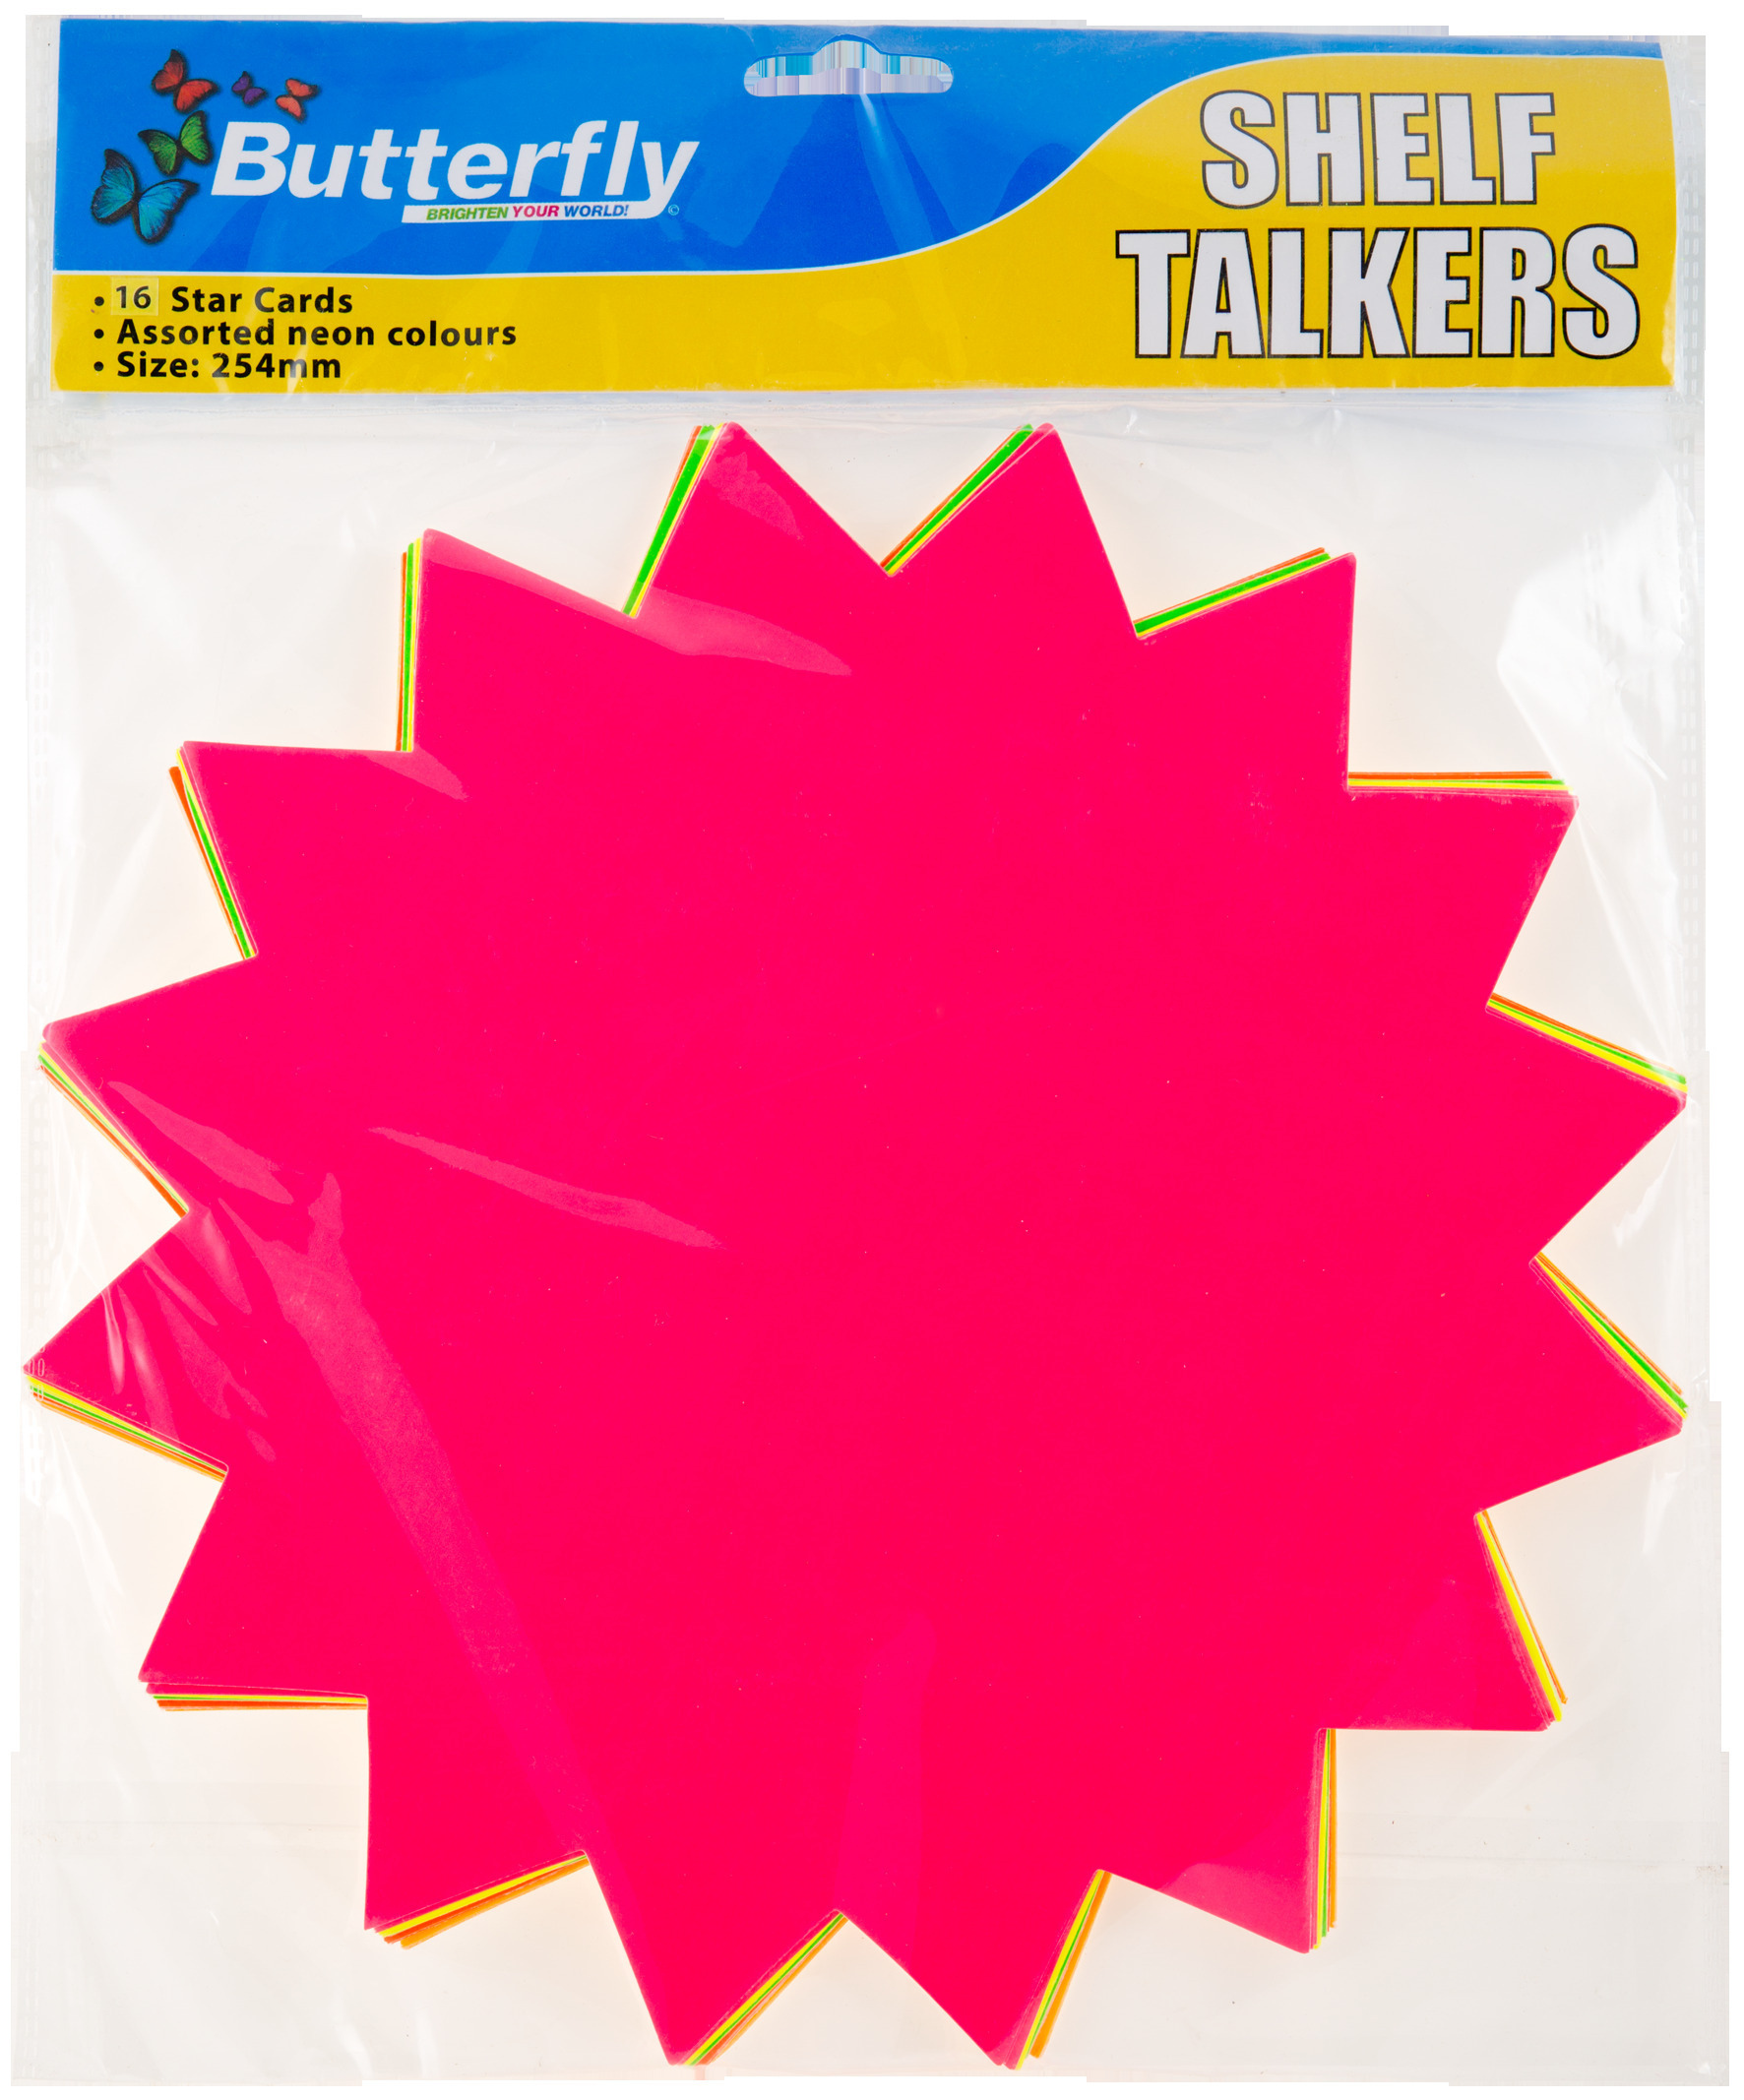 Shelf Talkers - Card Stars 16 (254mm)